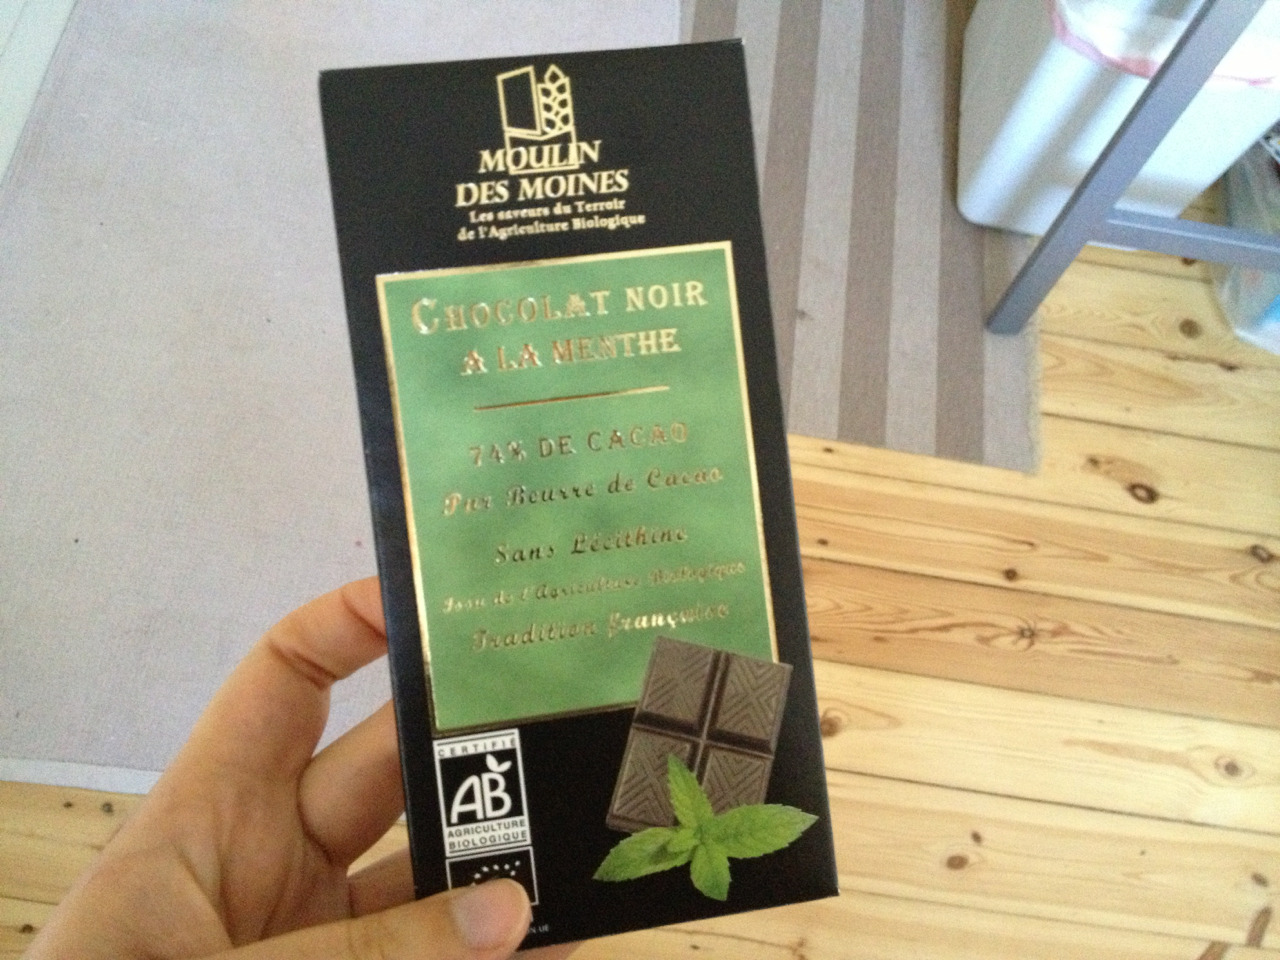 moulin des moines - 74% cacao with mint. lovely :) the mint was subtle but still quite refreshing!